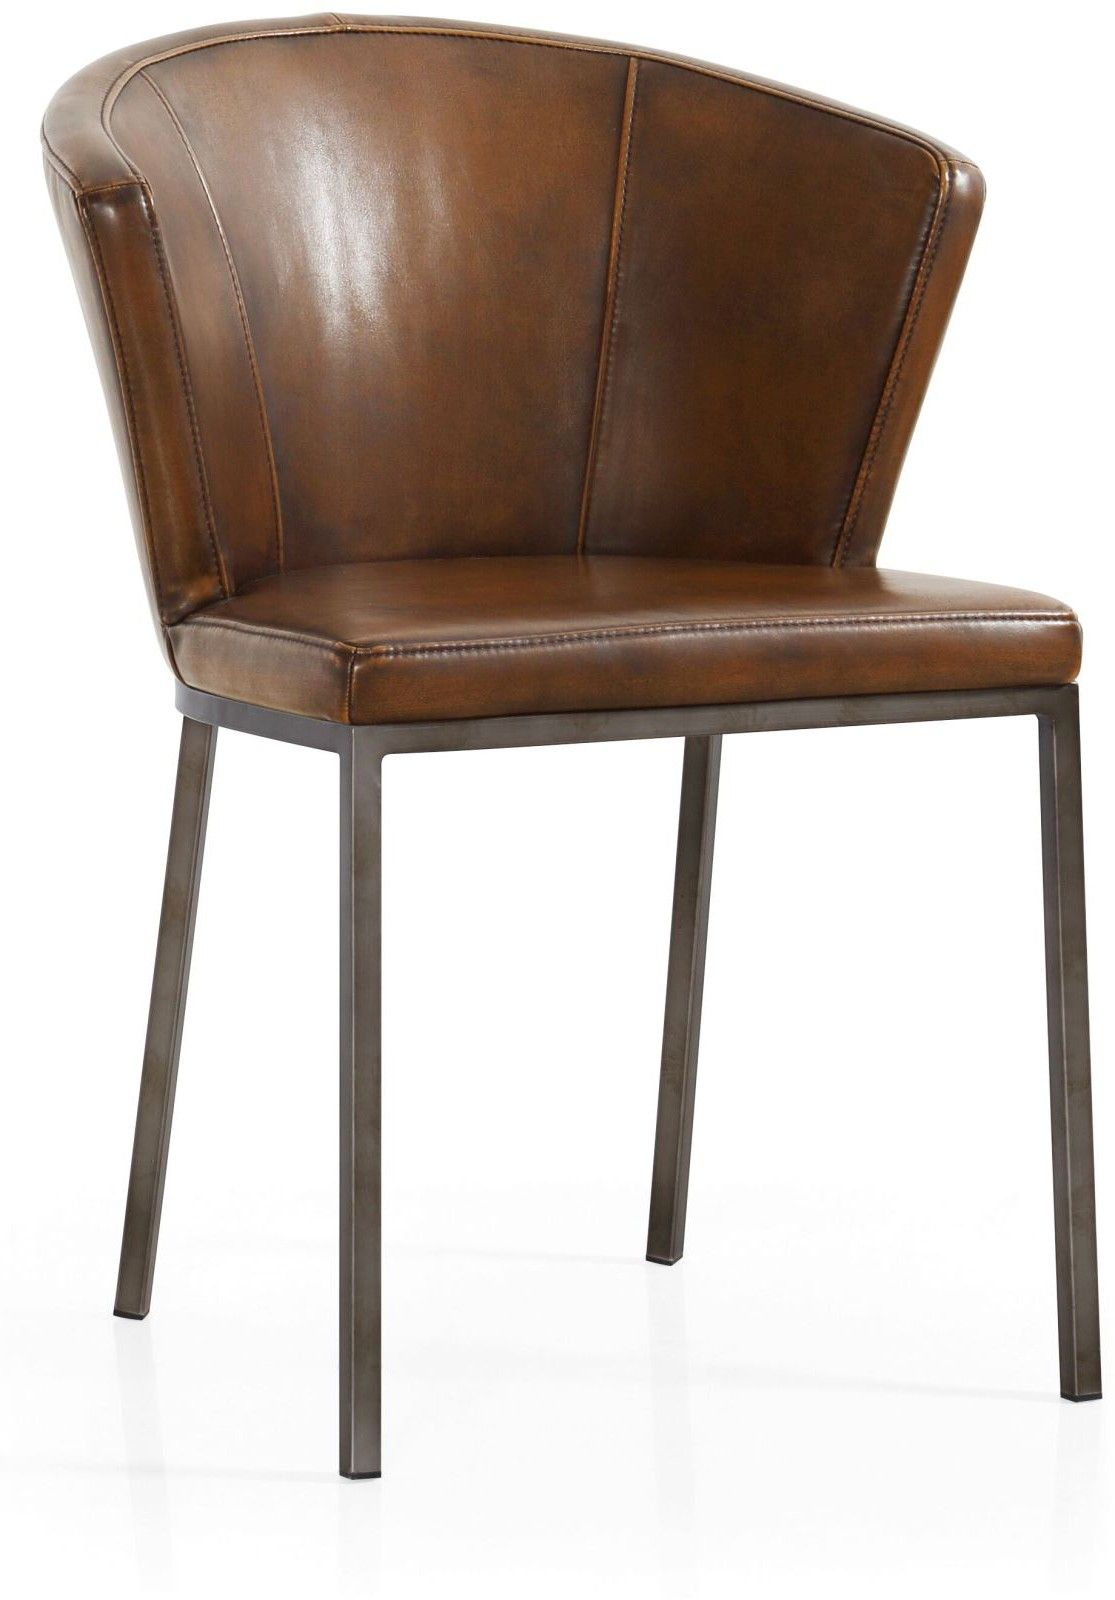 Retro Curve Dining Chair